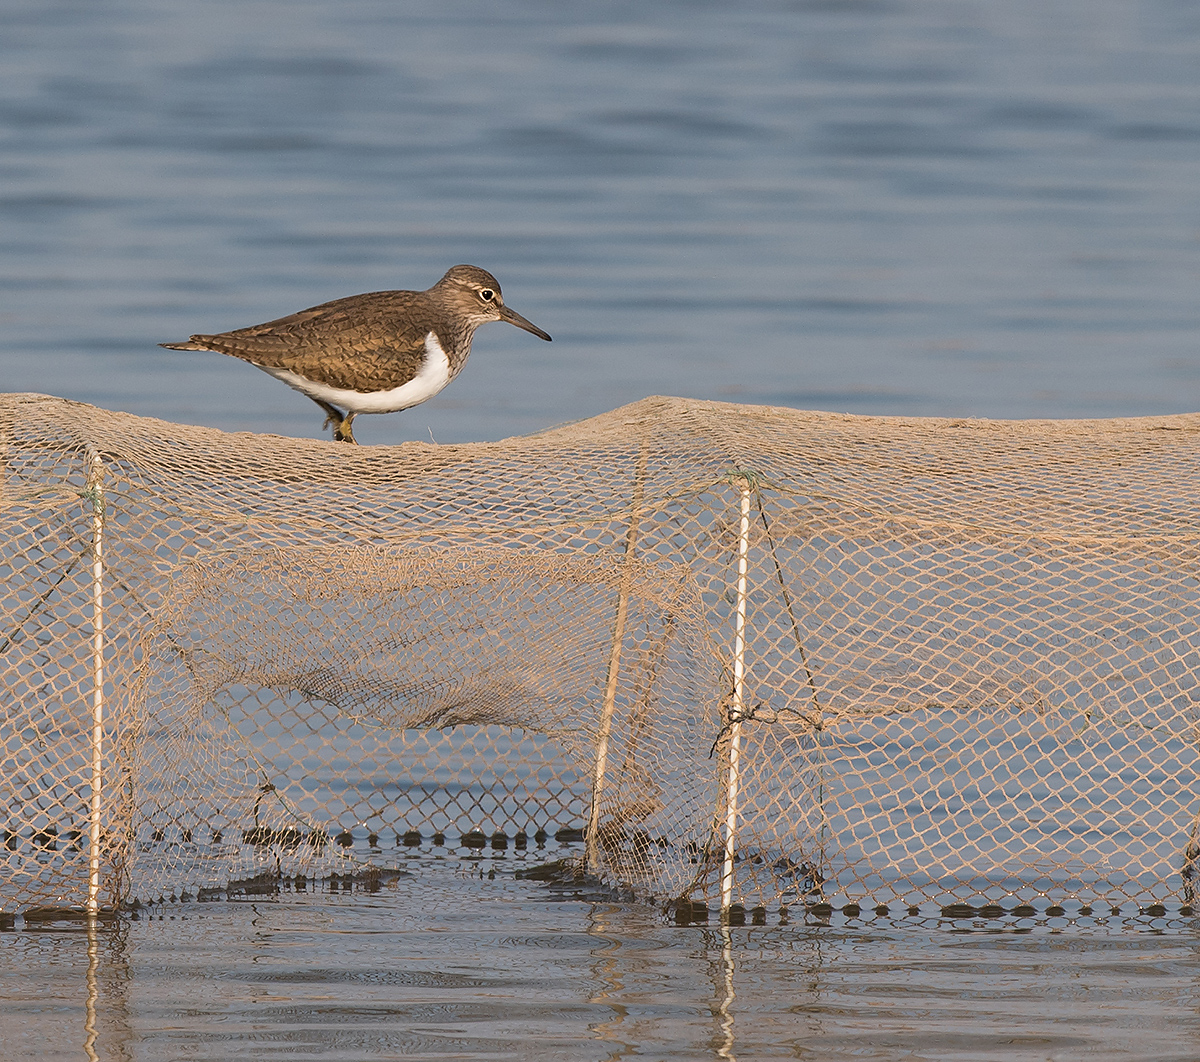 Common Sandpiper, Cape Nanhui, Shanghai, China, 2017. (Kai Pflug)